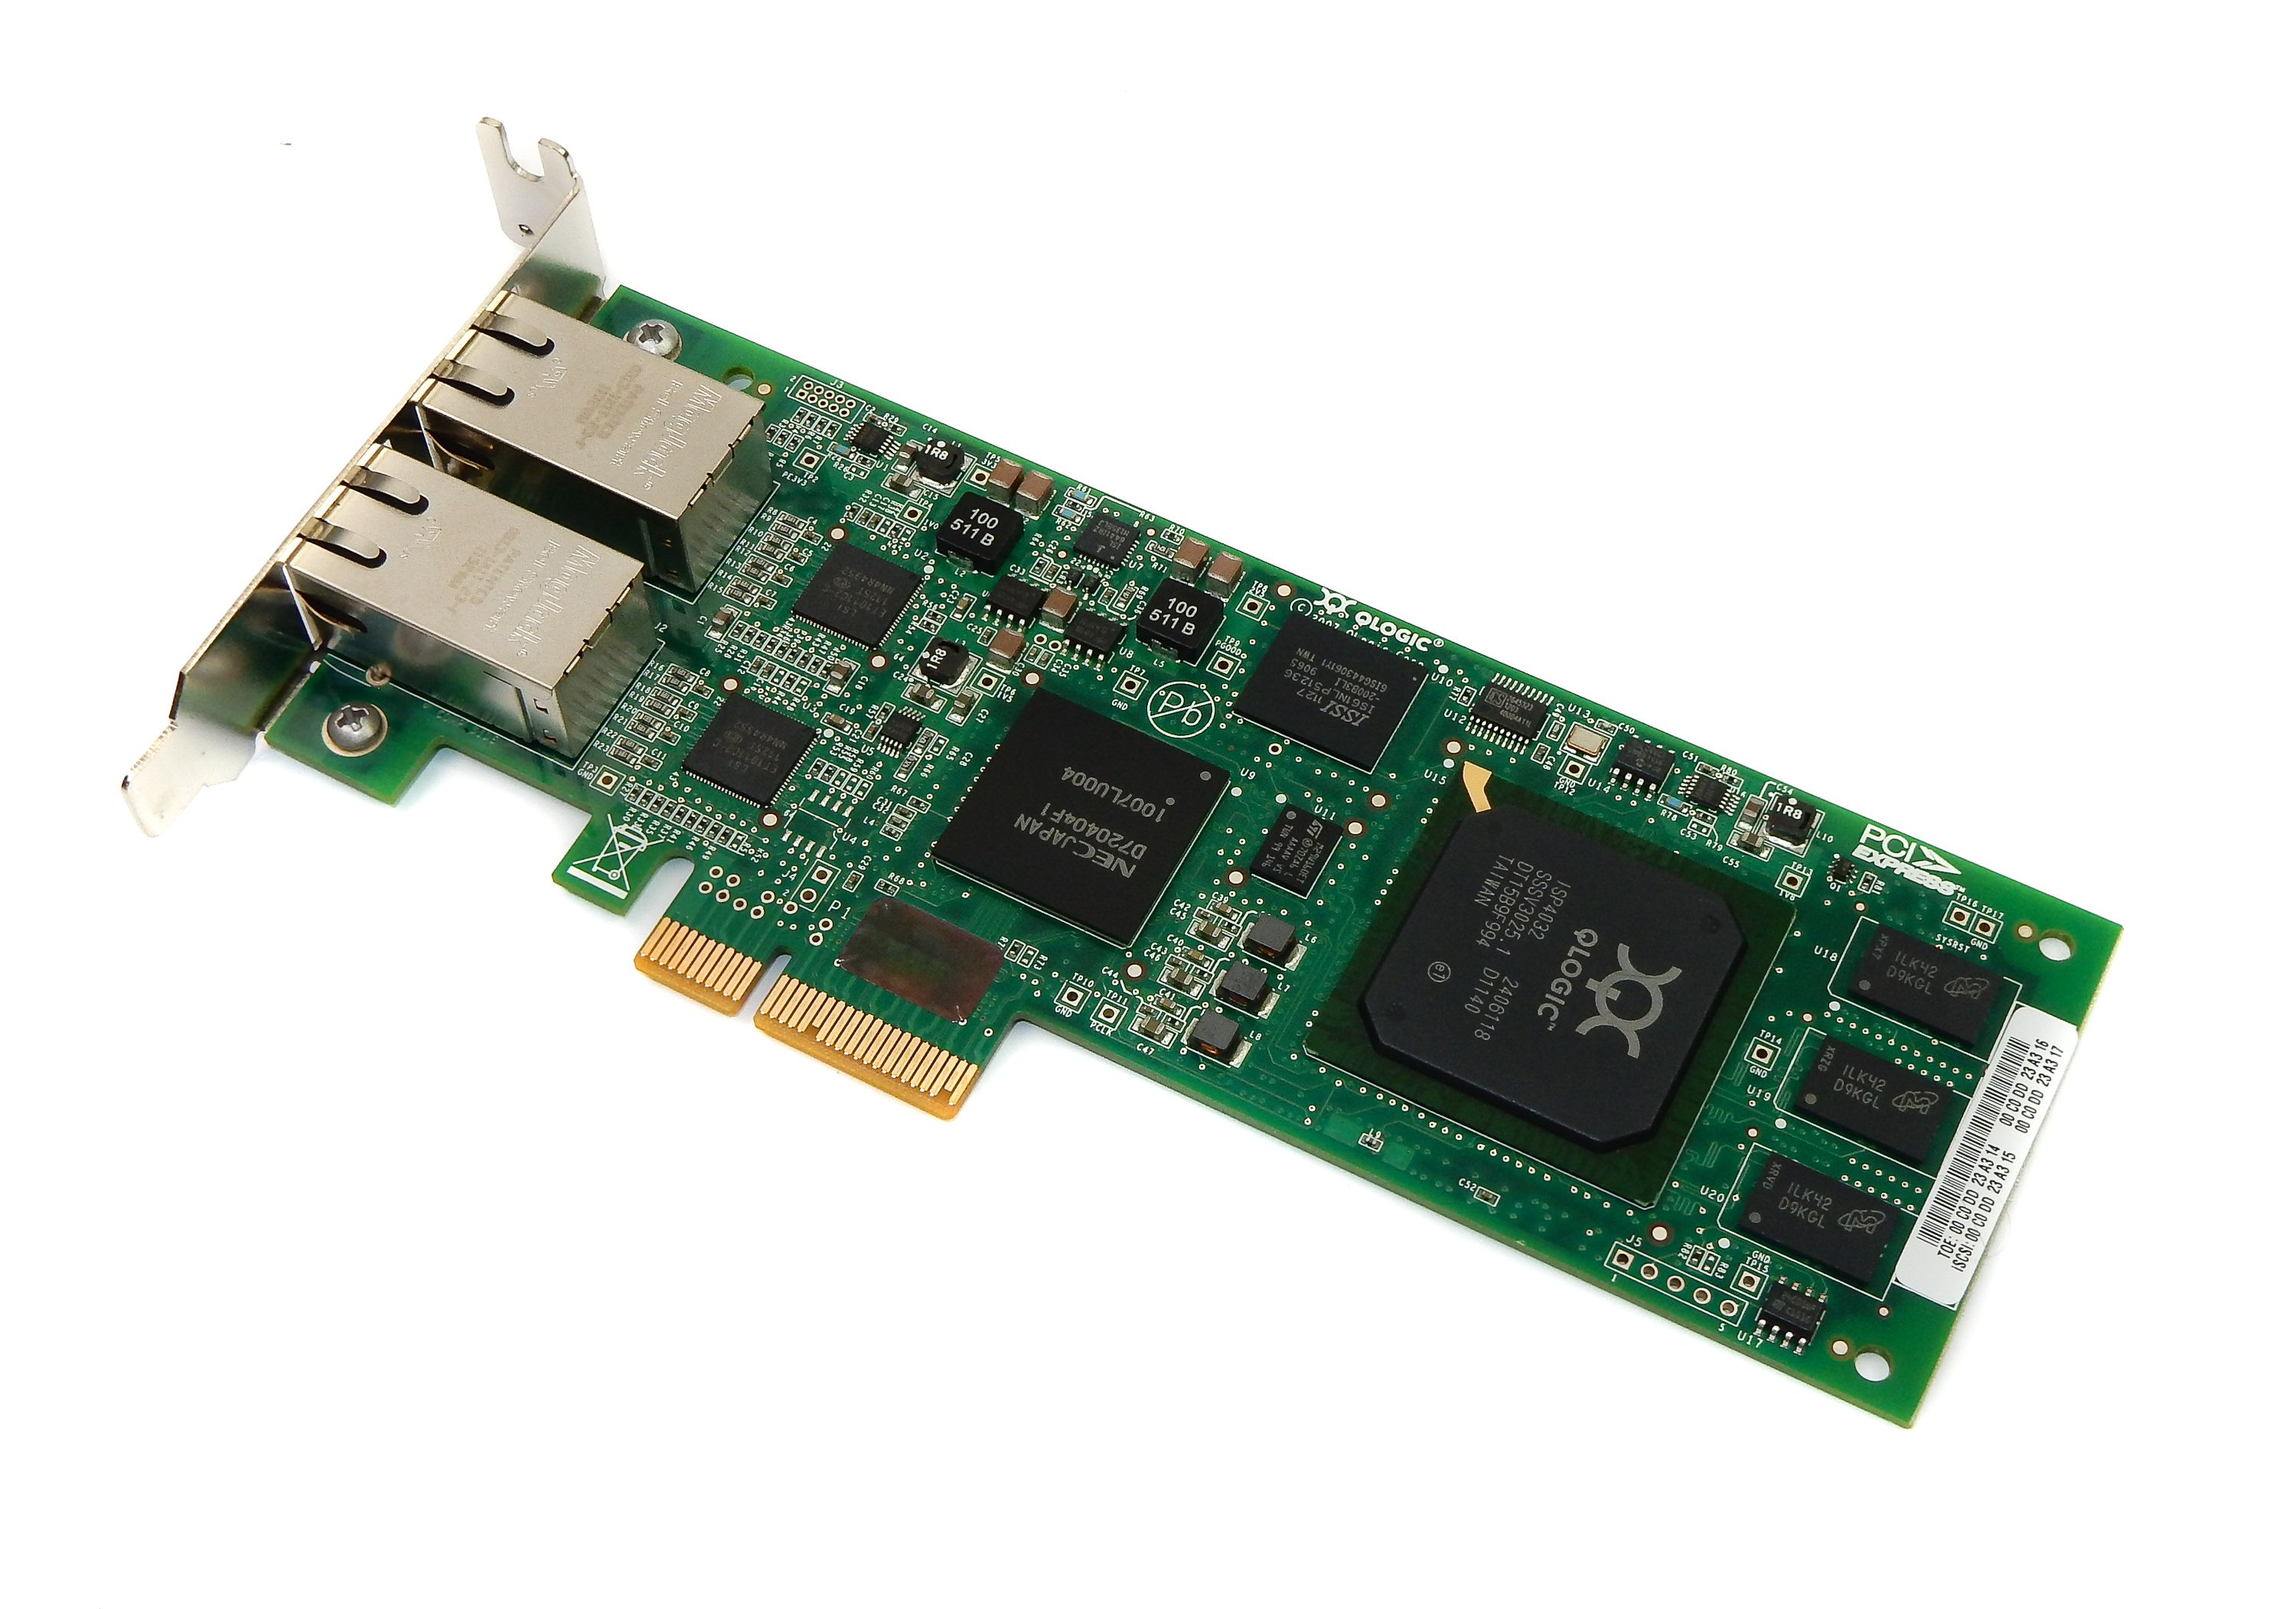 Qlogic QLE4062C Dual Port PCI-e Gigabit Ethernet Adapter IX4010402-11 C9C50 / LP